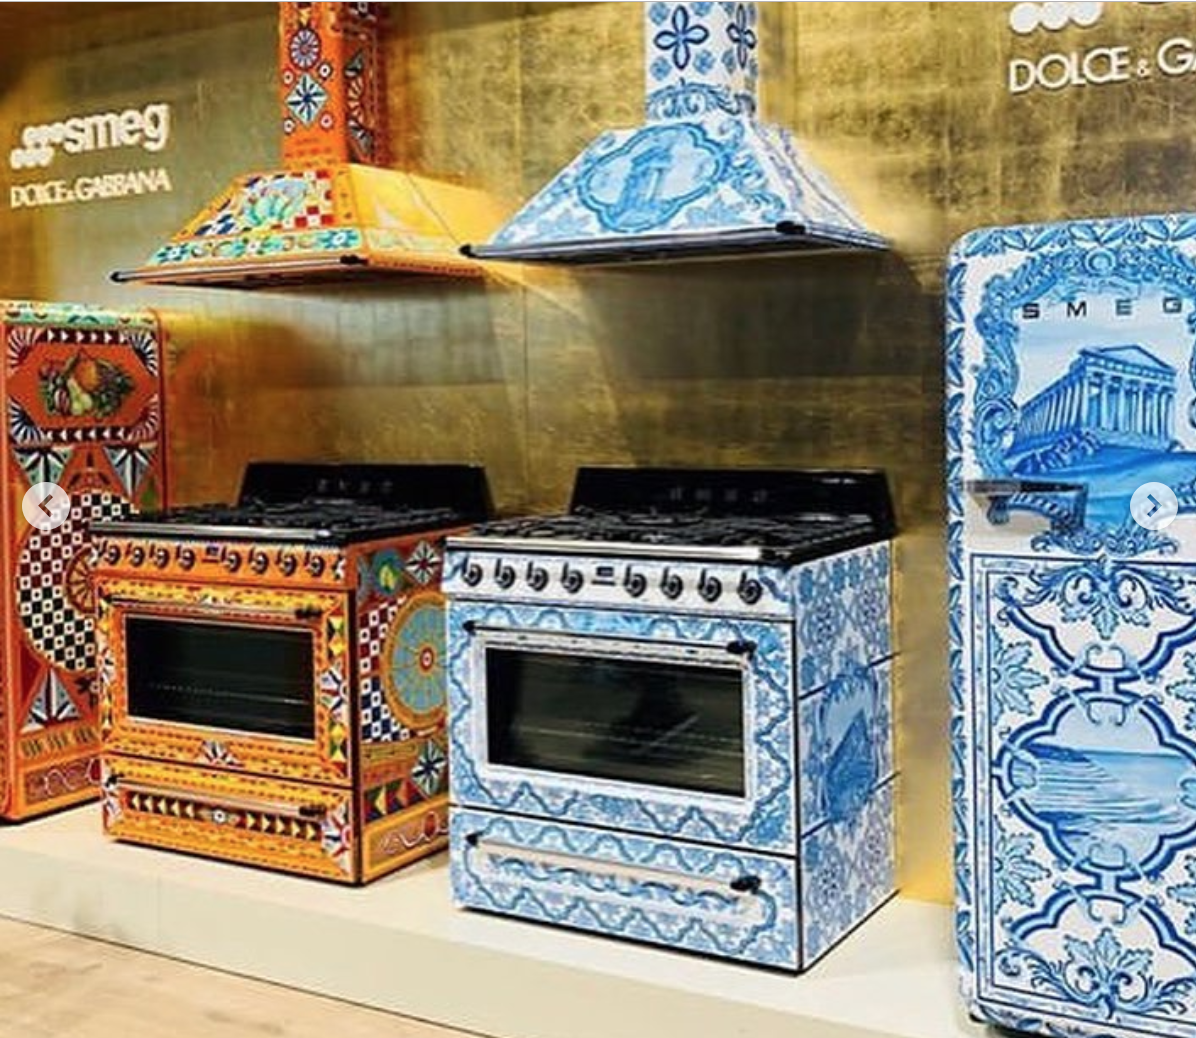 Dolce and Gabbana patterned appliances at   Smeg USA at KBIS